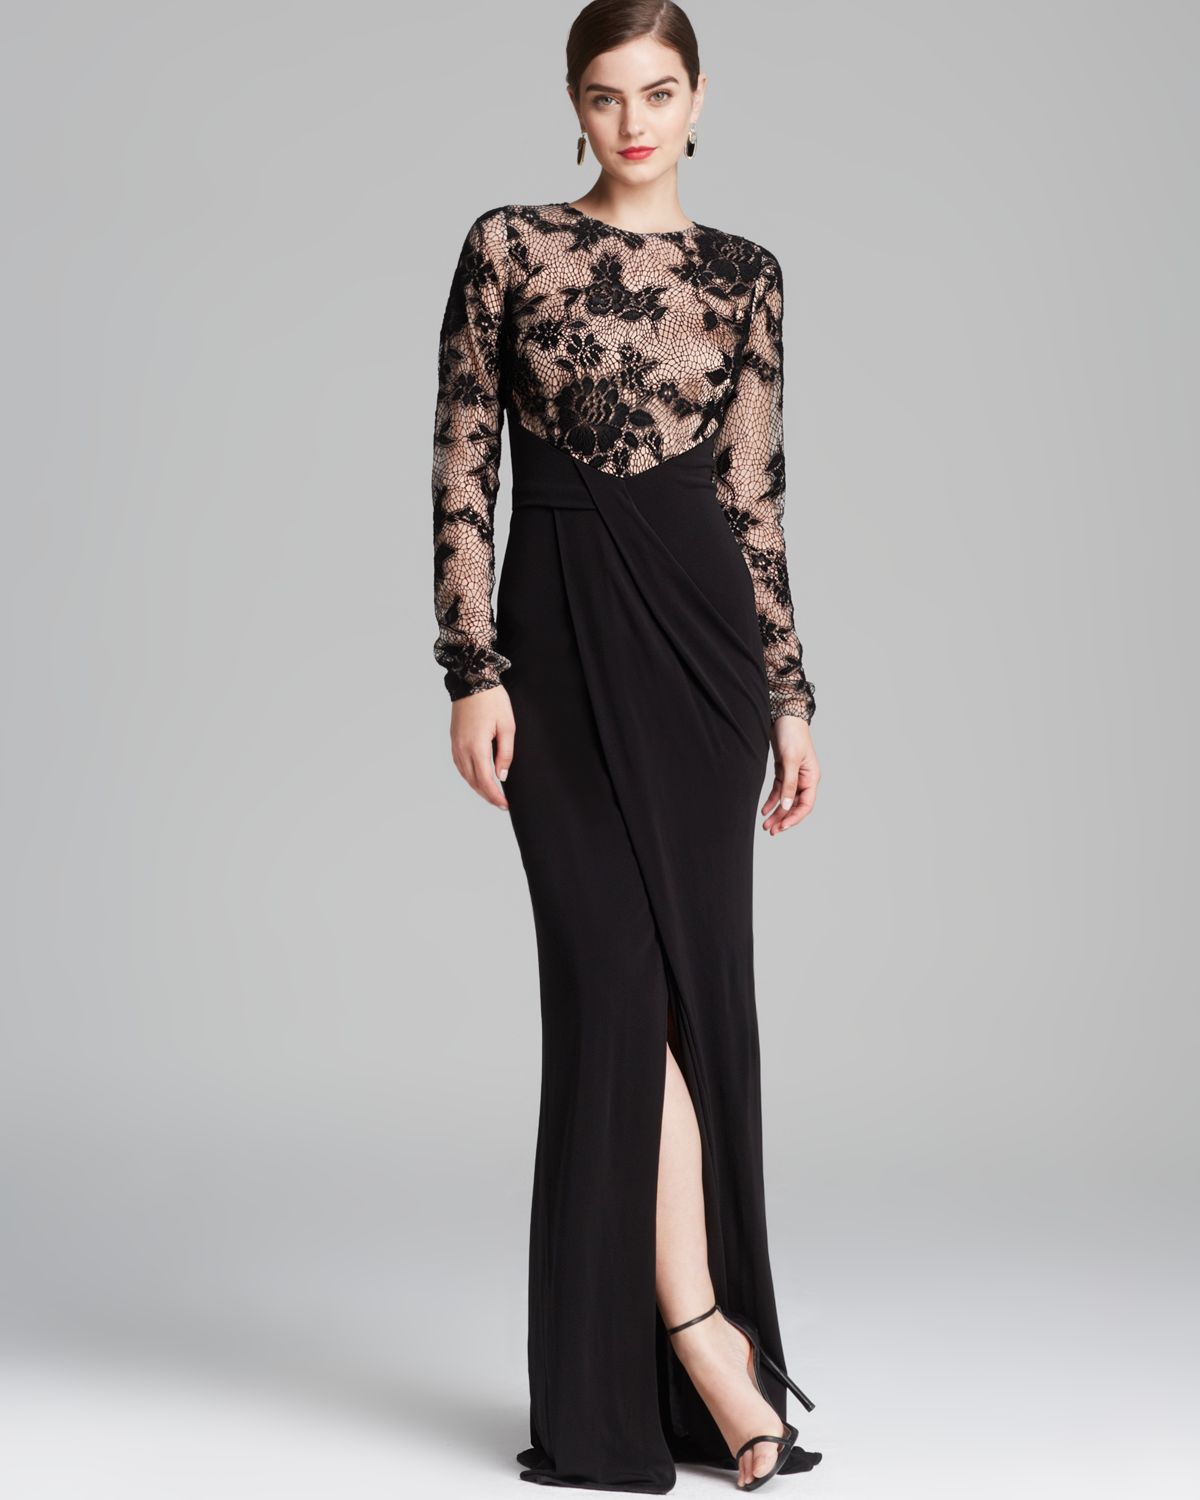 Lyst - David Meister Gown Lace Illusion in Black